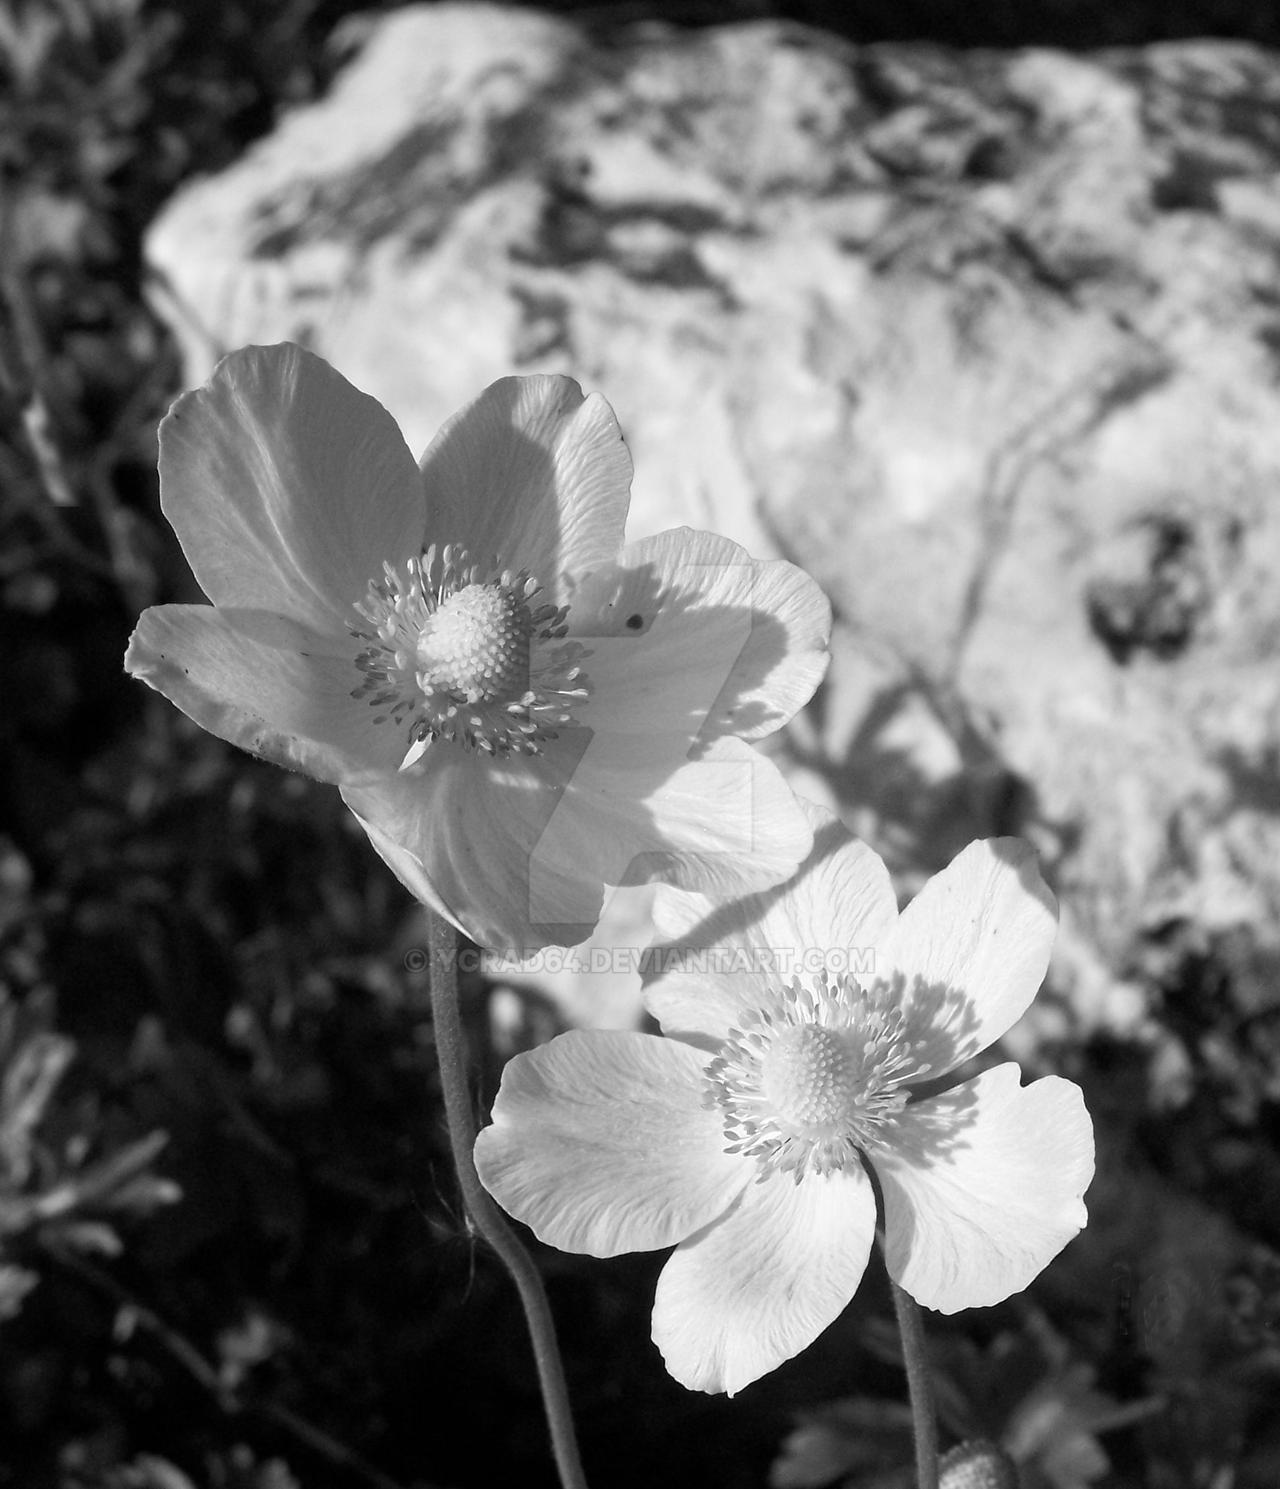 colorless beauty by ycrad64